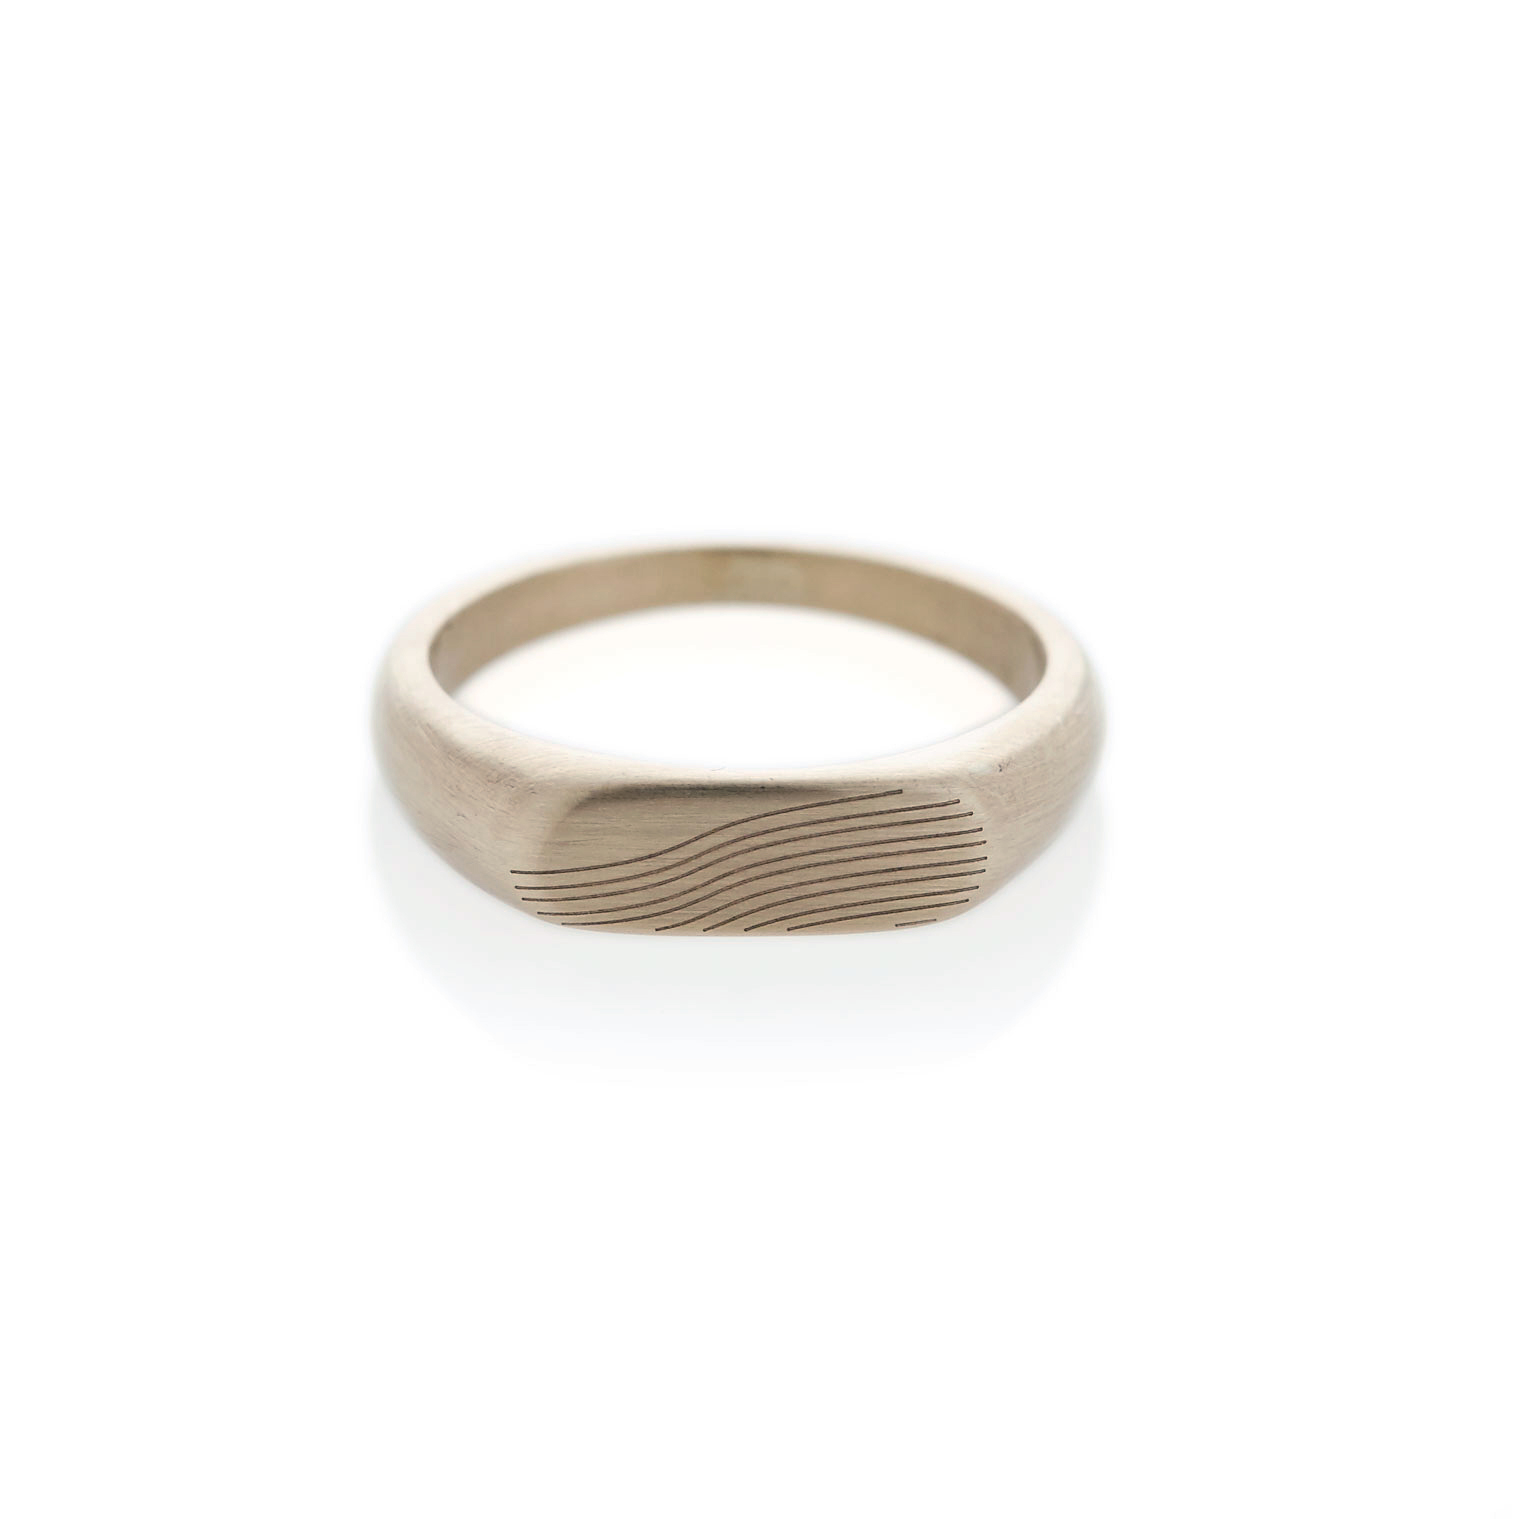 Slope white gold landscape signet ring